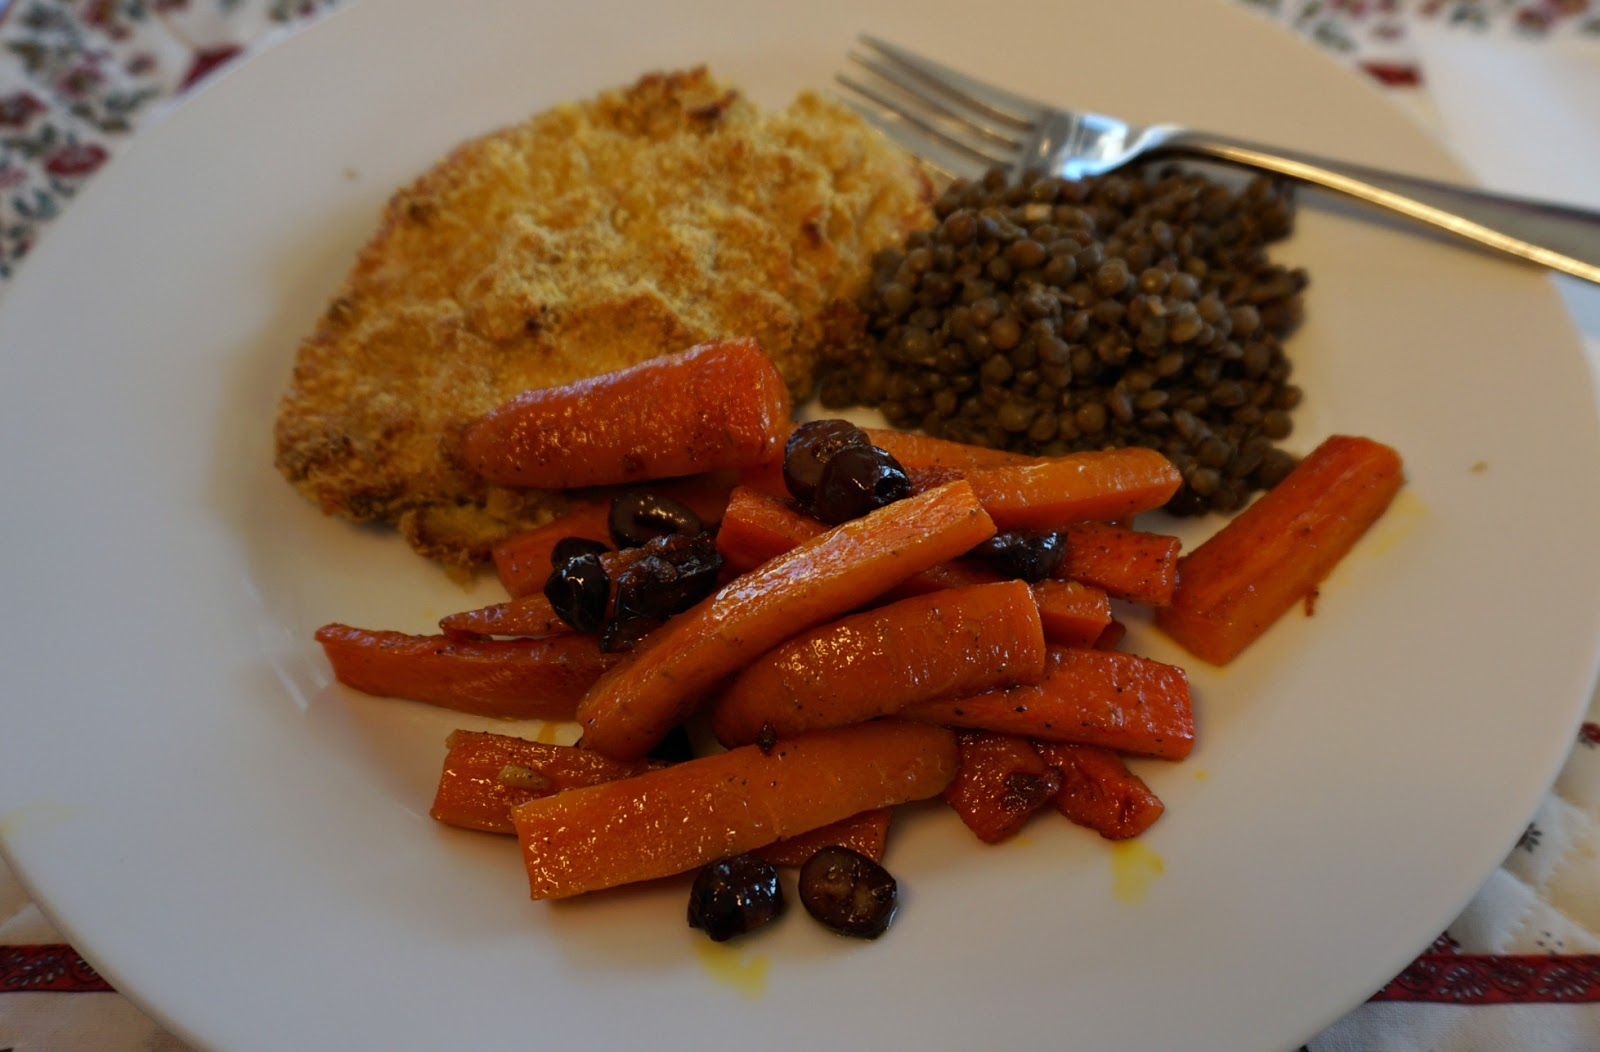 Braised carrots with turkey escalopes